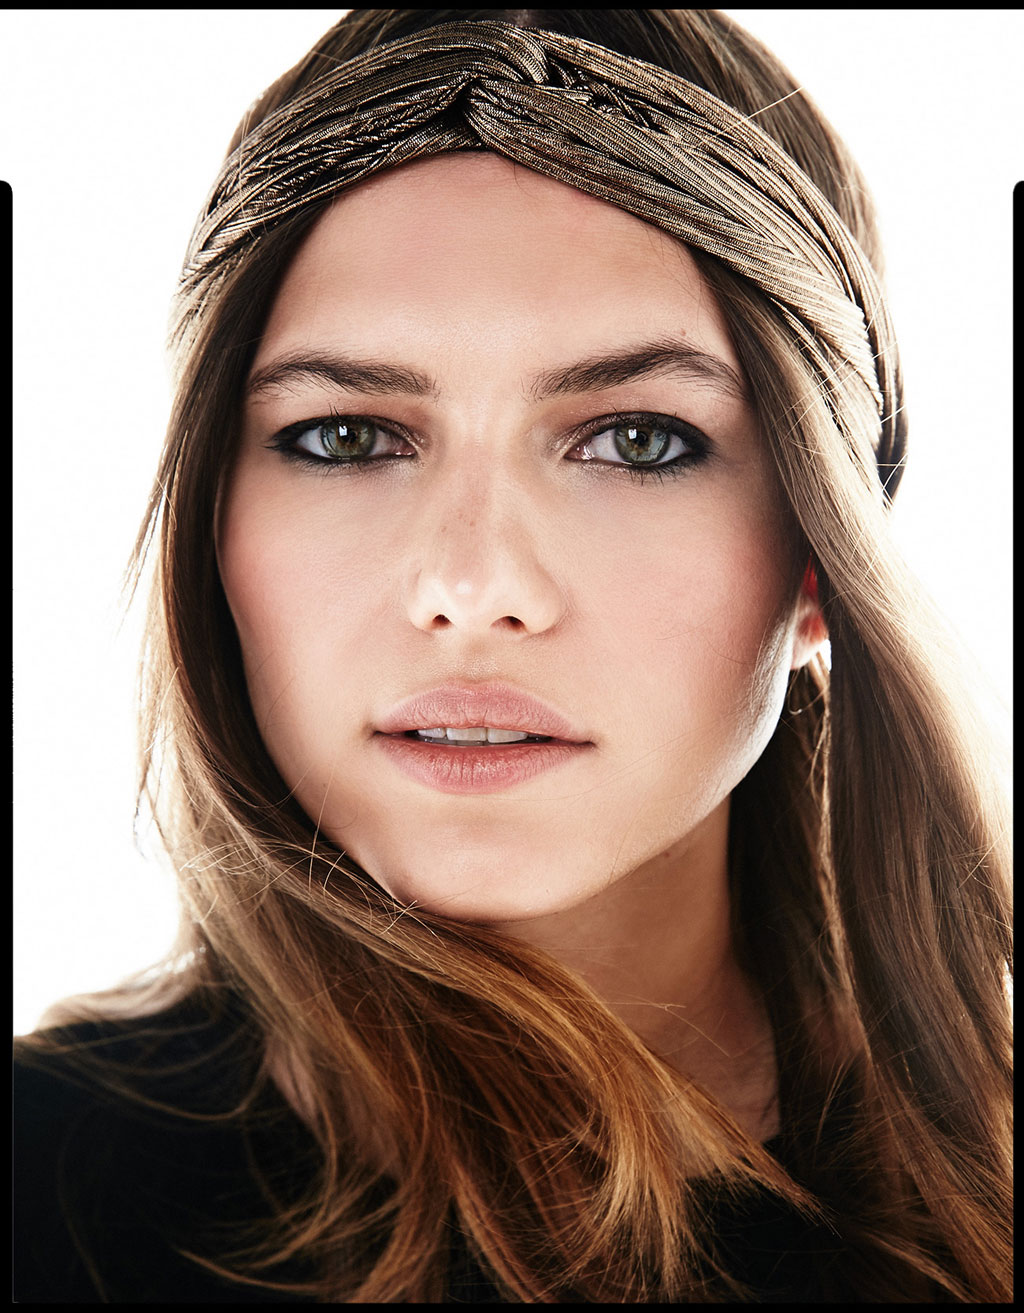 Kupferfarbener Metallic-Turban